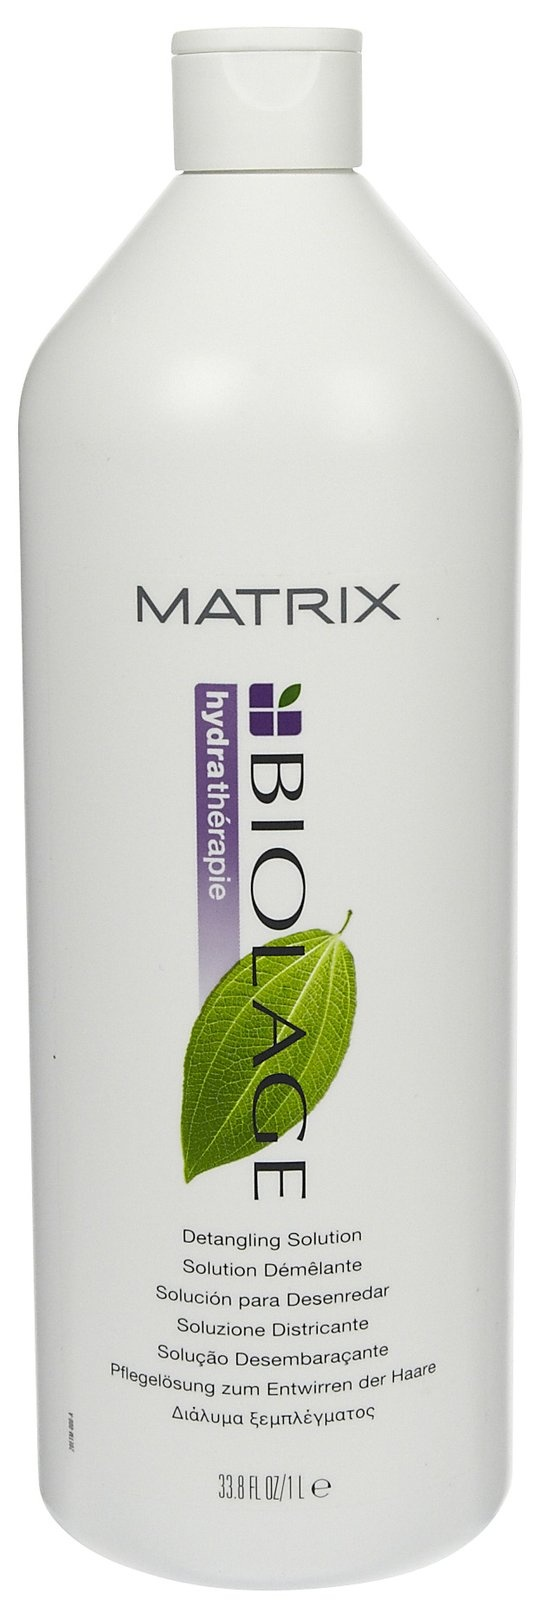 Biolage Detangling Solution-- soooooo awesome on hair that tangles easily! It's magic